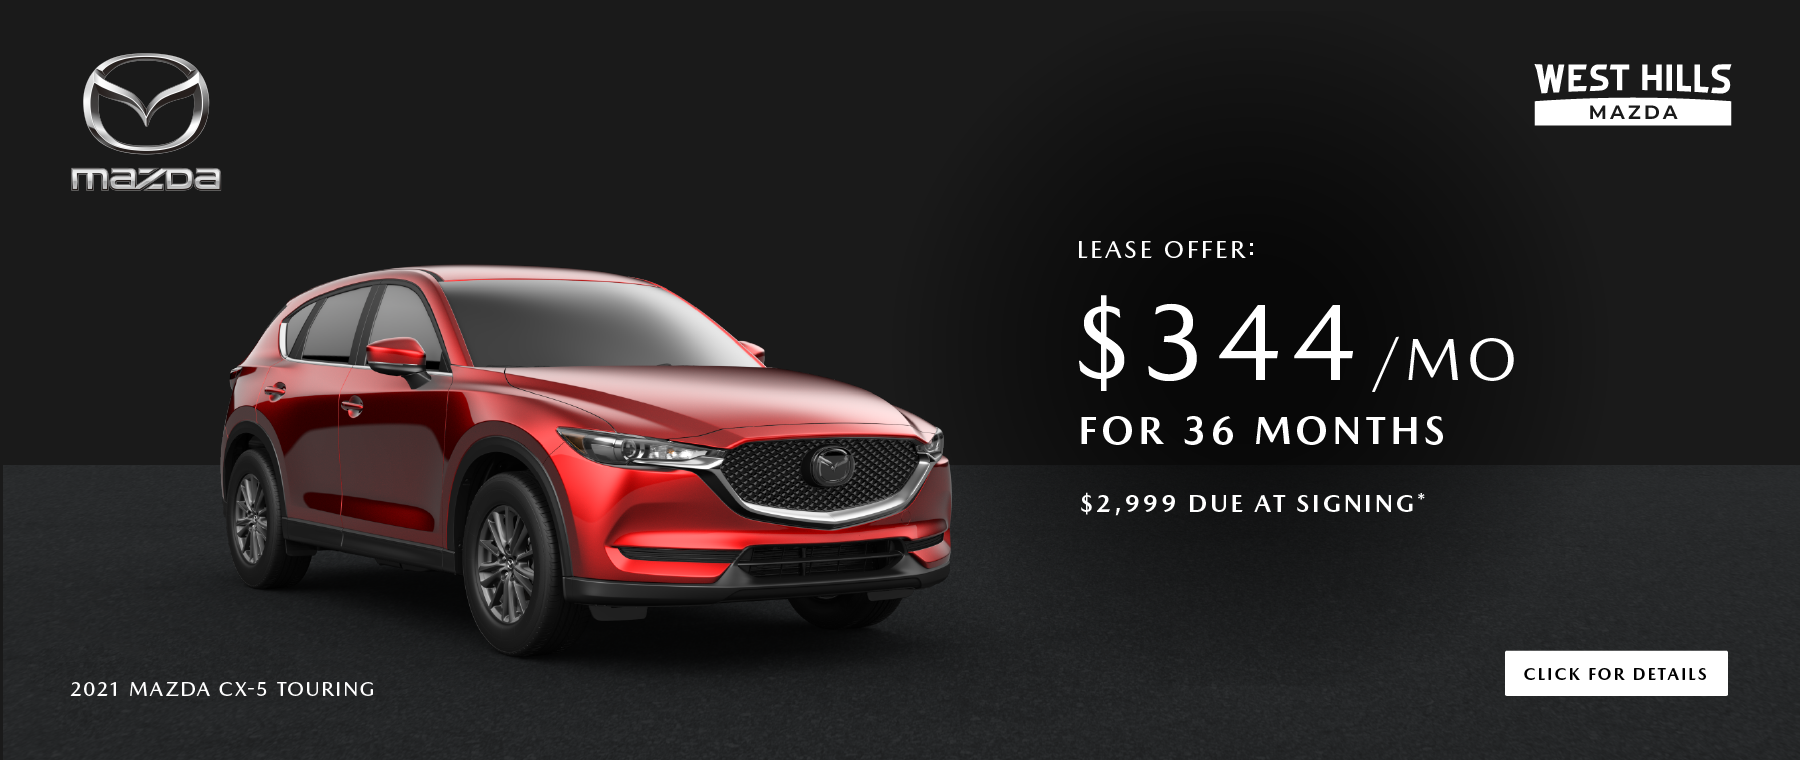 2021 MAZDA CX-5 TOURING (featured vehicle) $344/mo. for 36 mos. $2,999 Due at Signing *